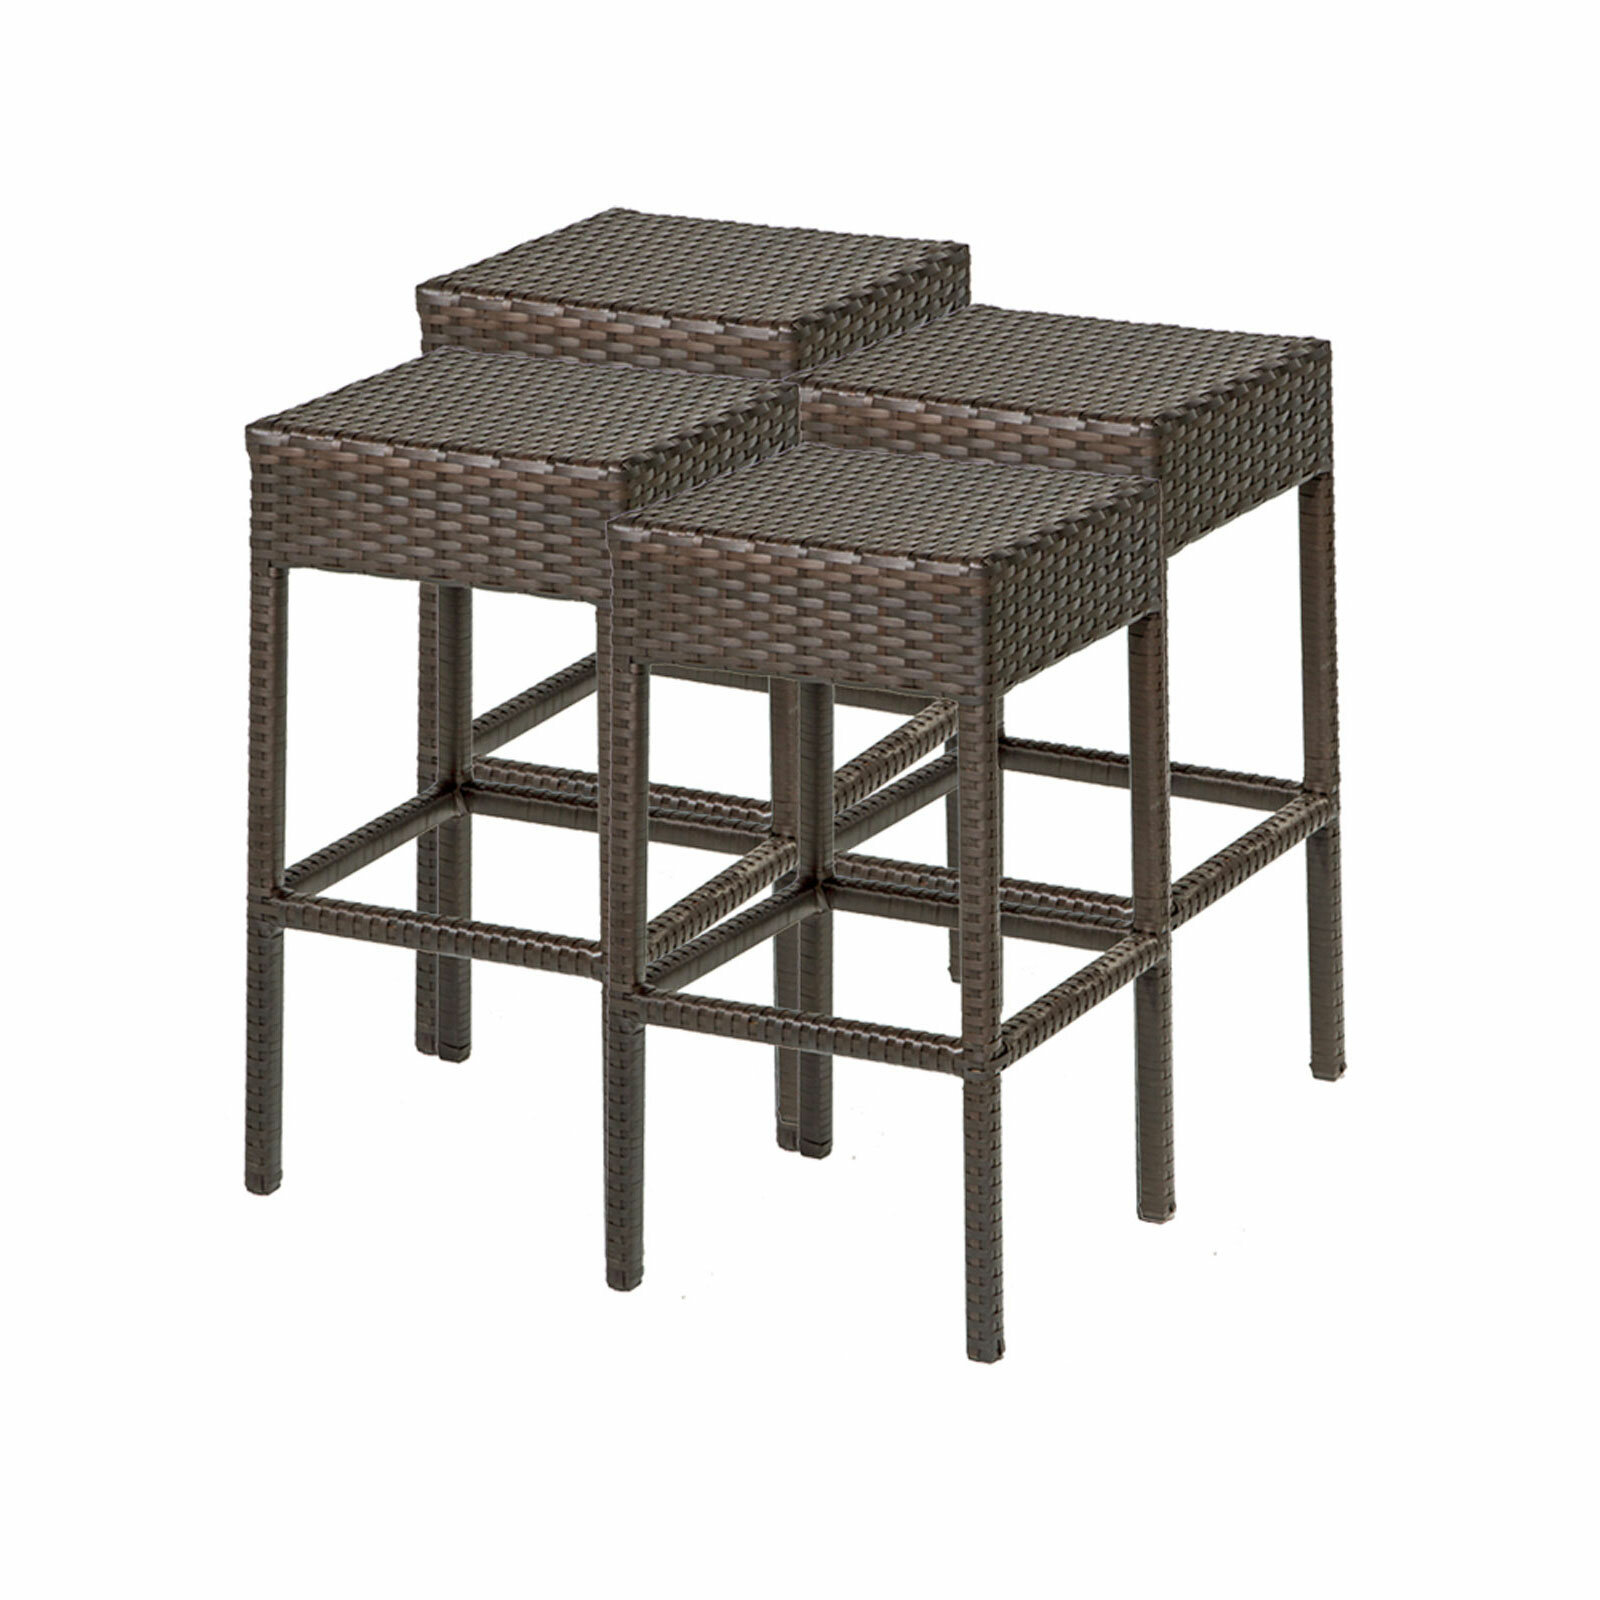 "Sol 72 Outdoor Stratford 30"" Patio Bar Stool & Reviews 